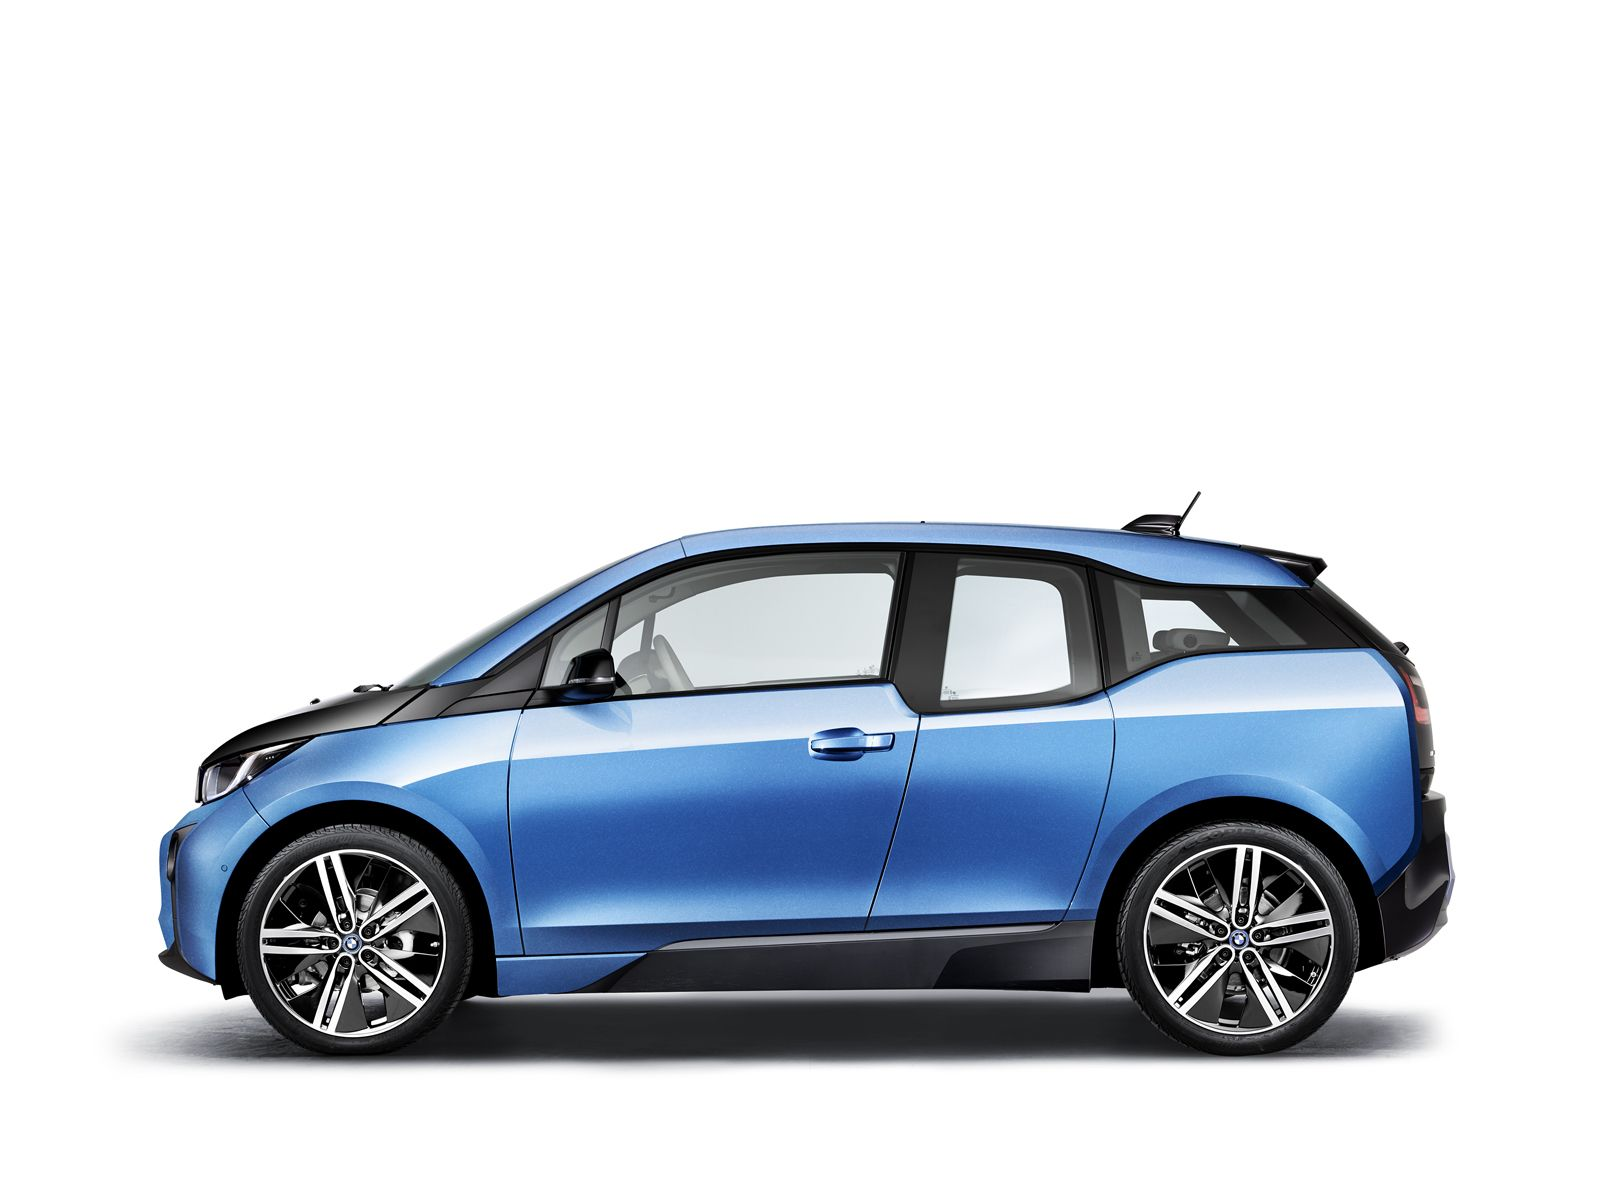 BMW To Reveal Facelifted i3 With New Look & Greater Range At Frankfurt Motor Show